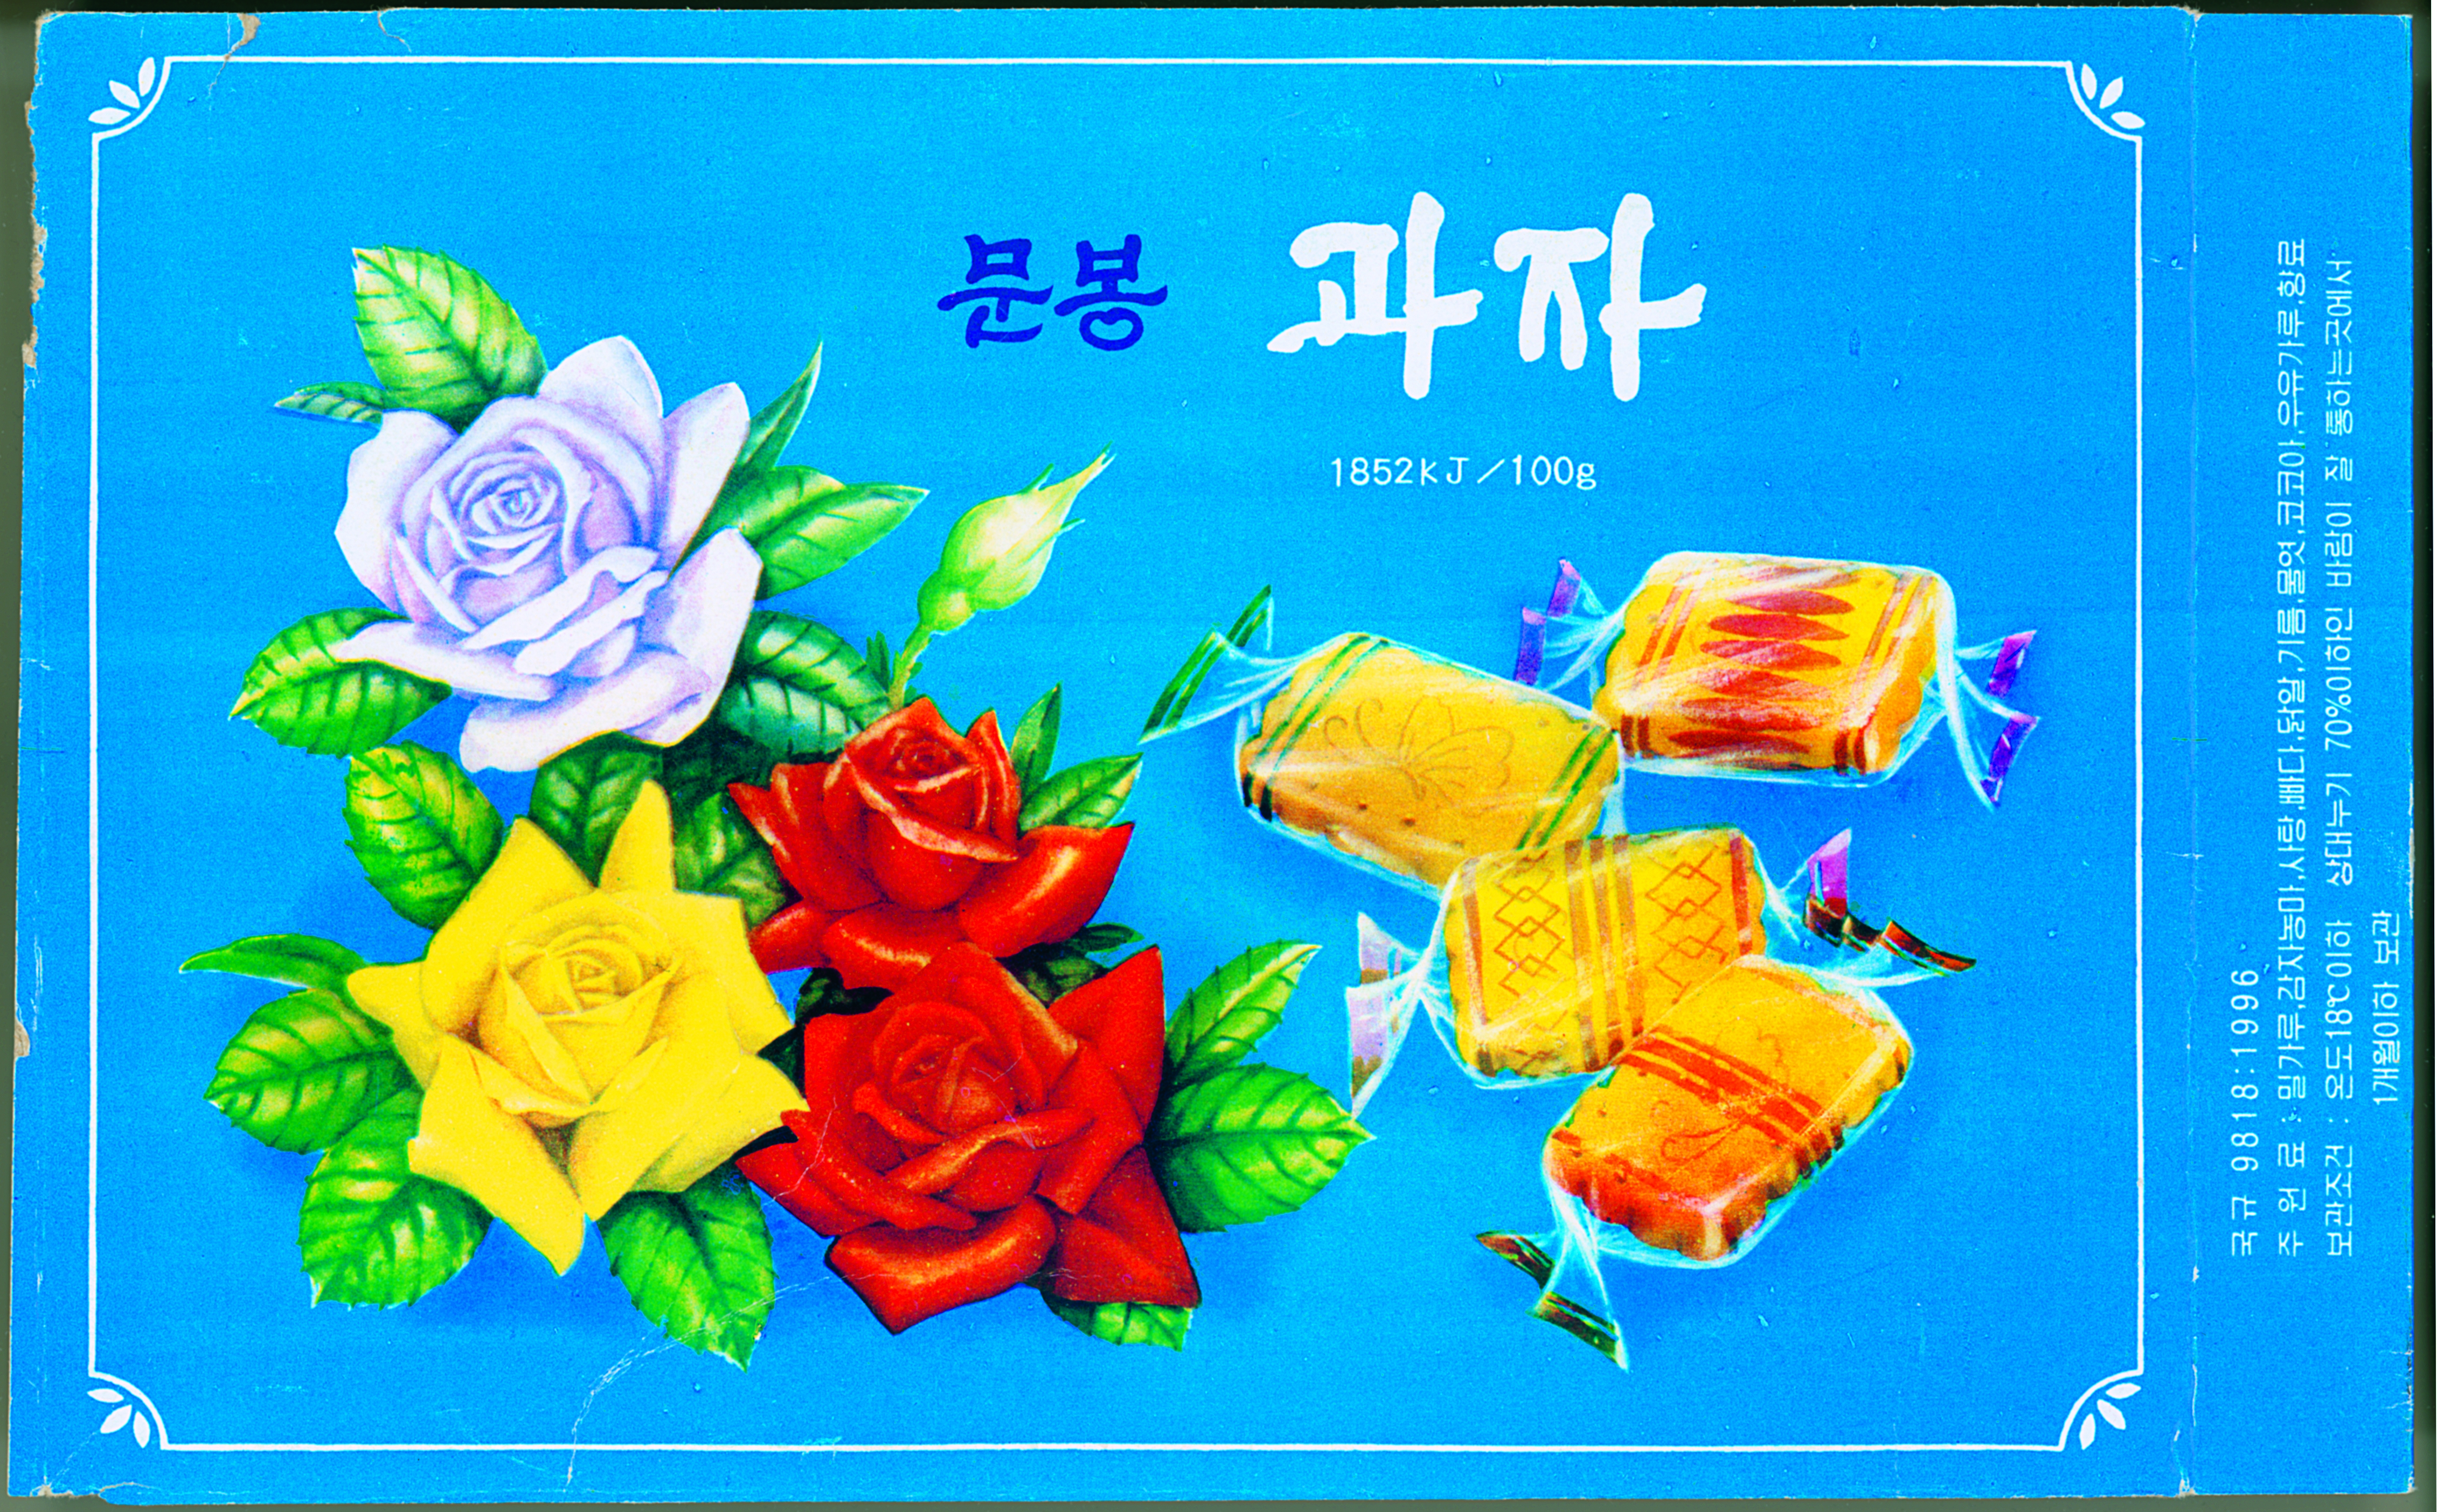 March 2018 books boots page 2 box of biscuits from north korea collection of nicholas bonner photograph courtesy of phaidon solutioingenieria